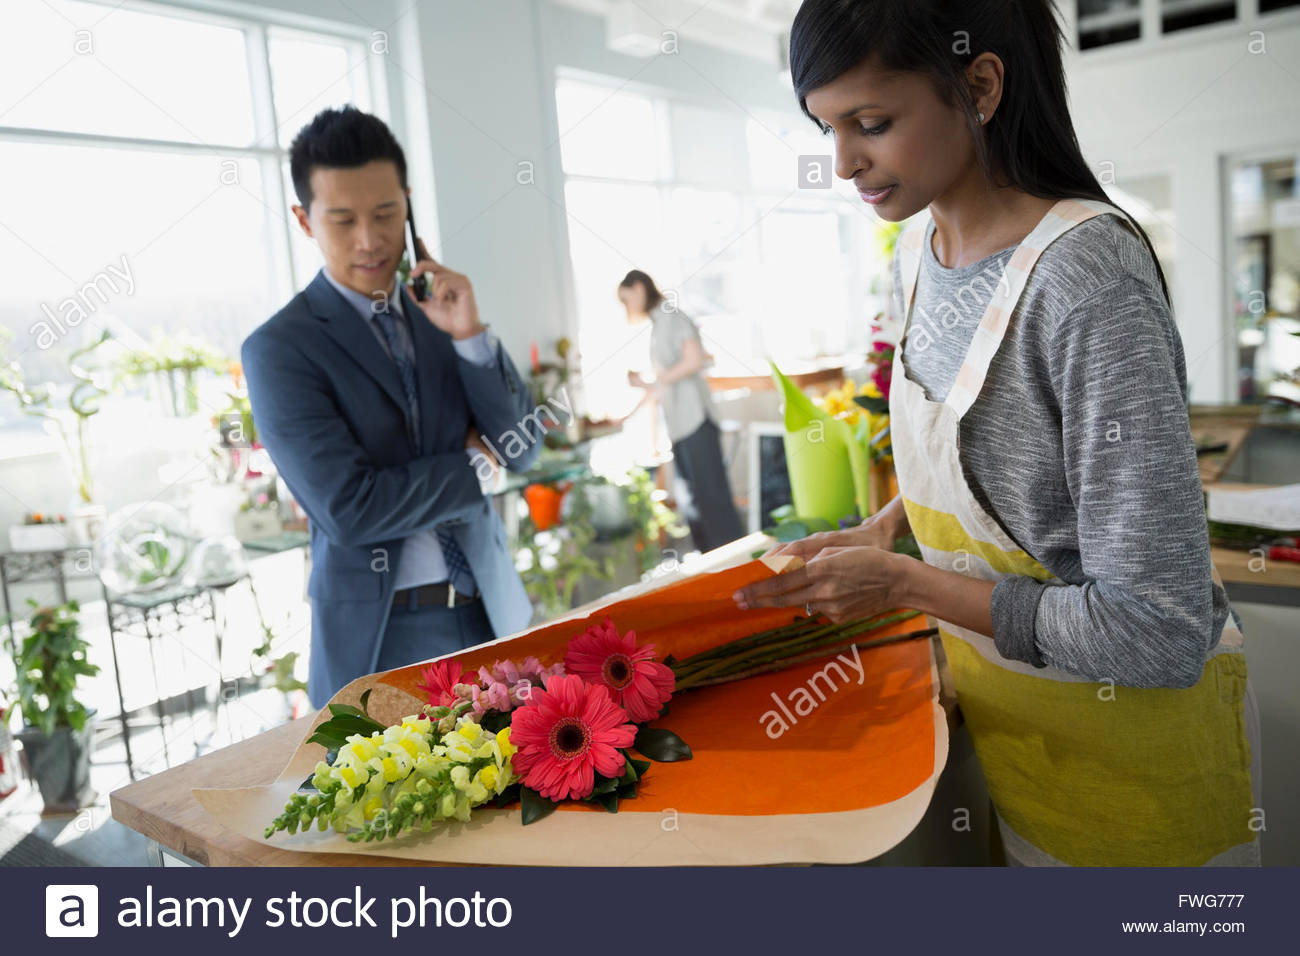 Florist wrapping flowers for man in flower shop - Stock Image